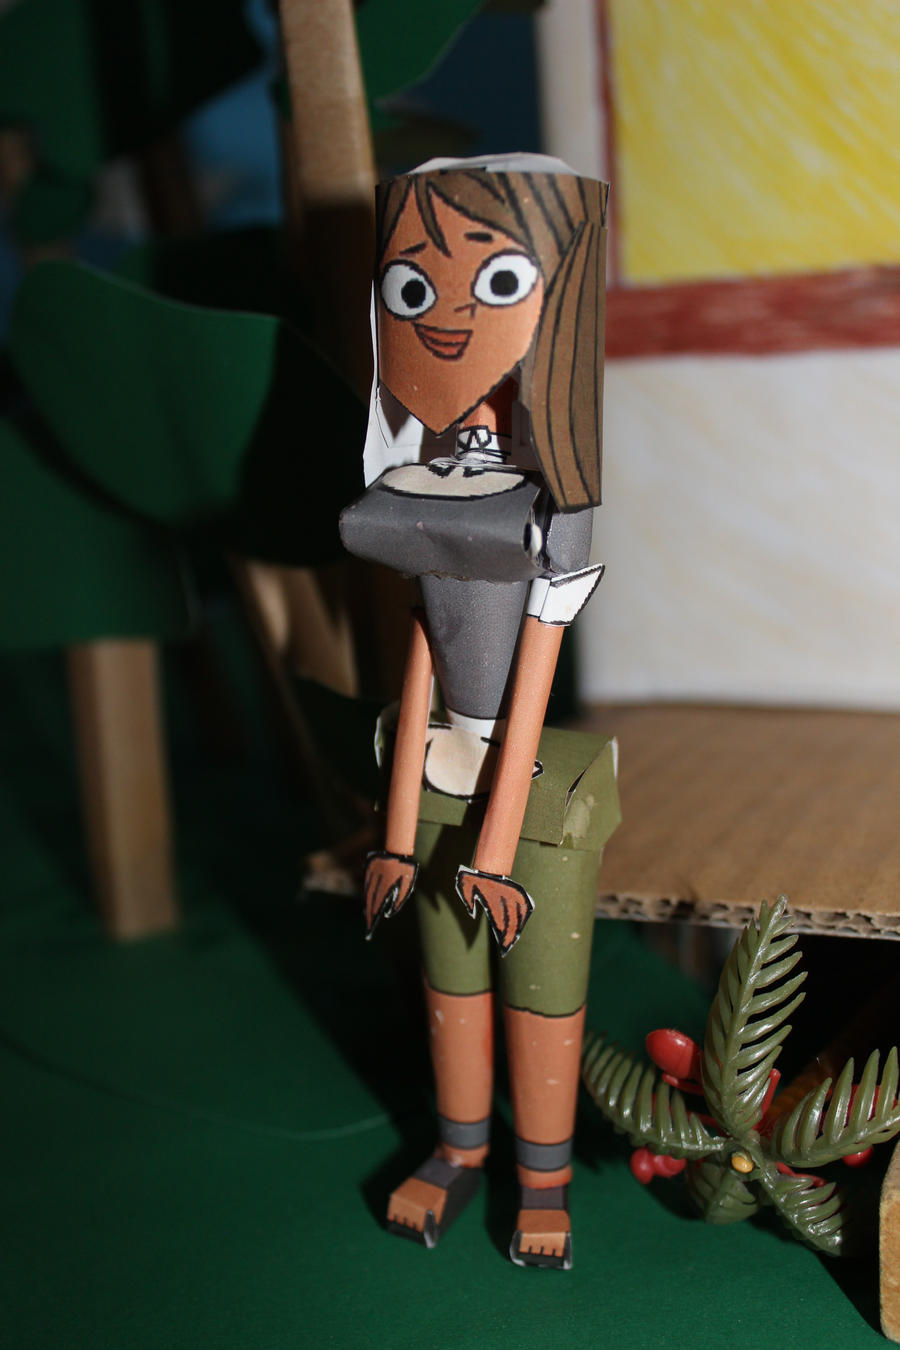 Courtney from Total Drama in Papercraft by ViluVector